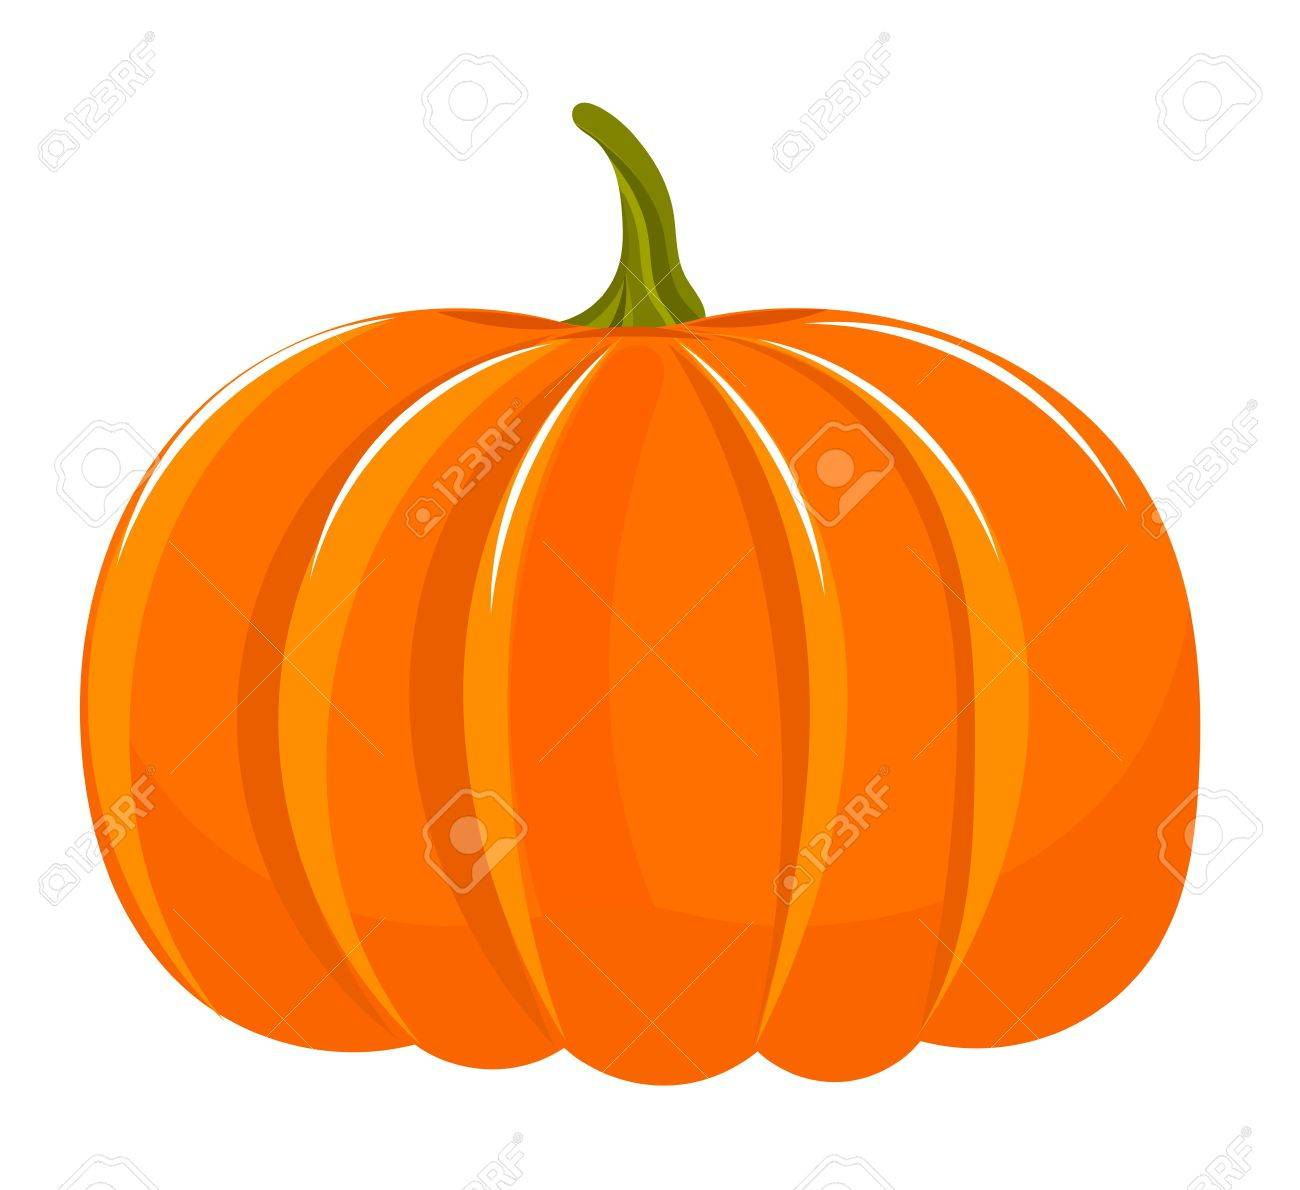 Pumpkin illustration isolated over white Stock Vector - 10723398